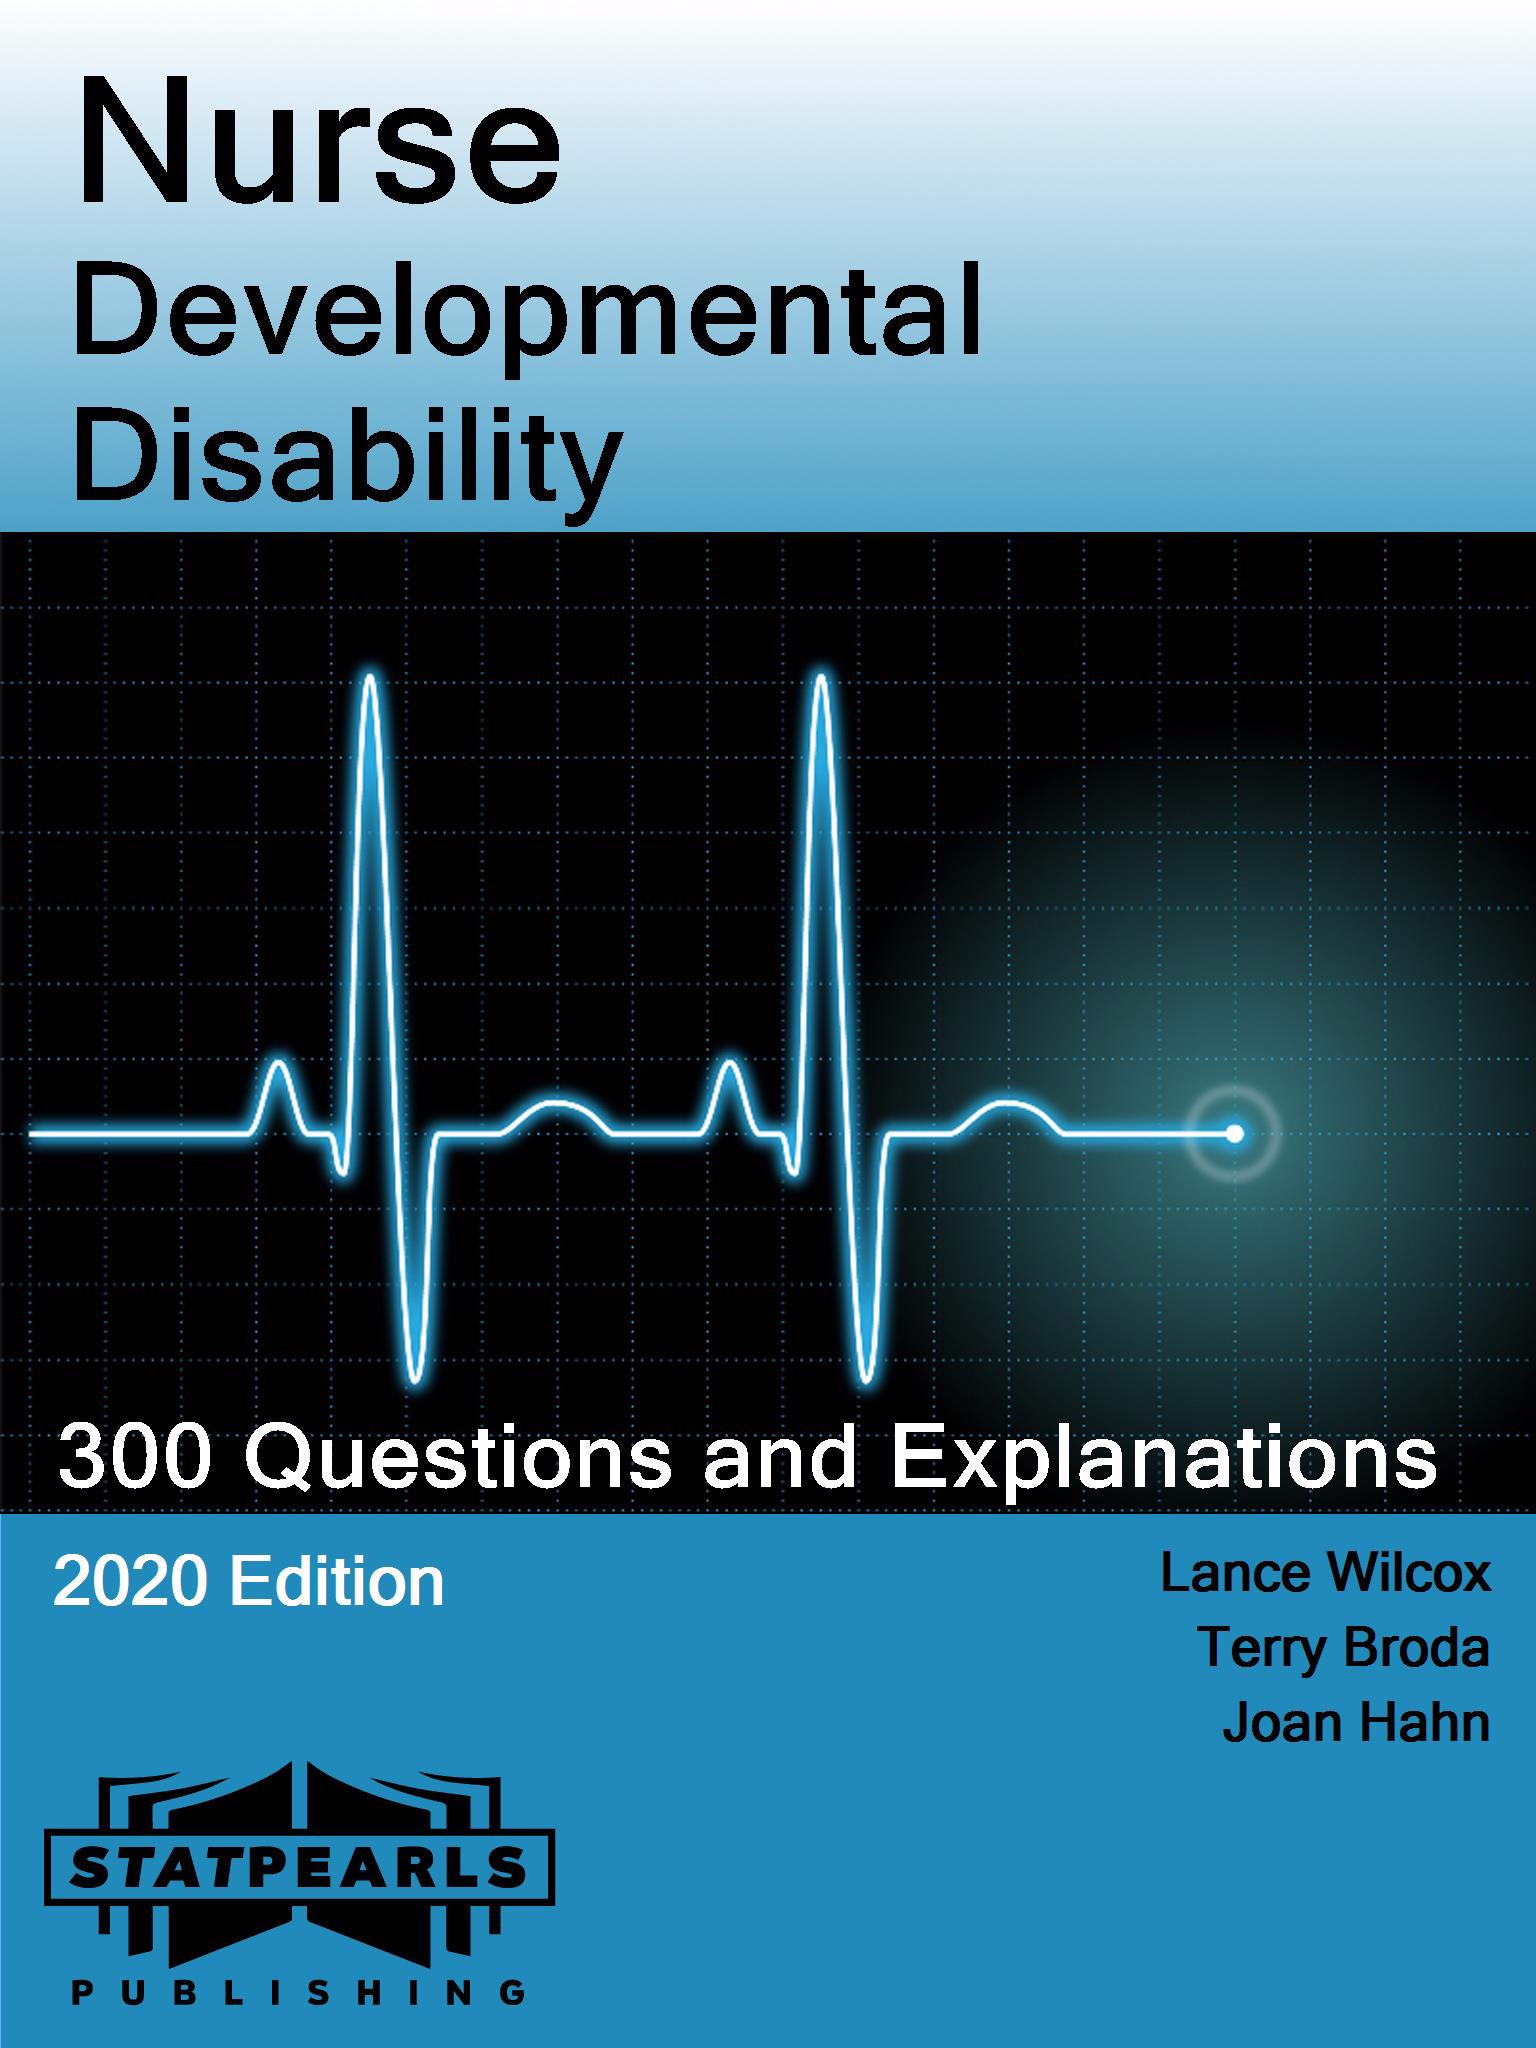 Nurse Developmental Disability